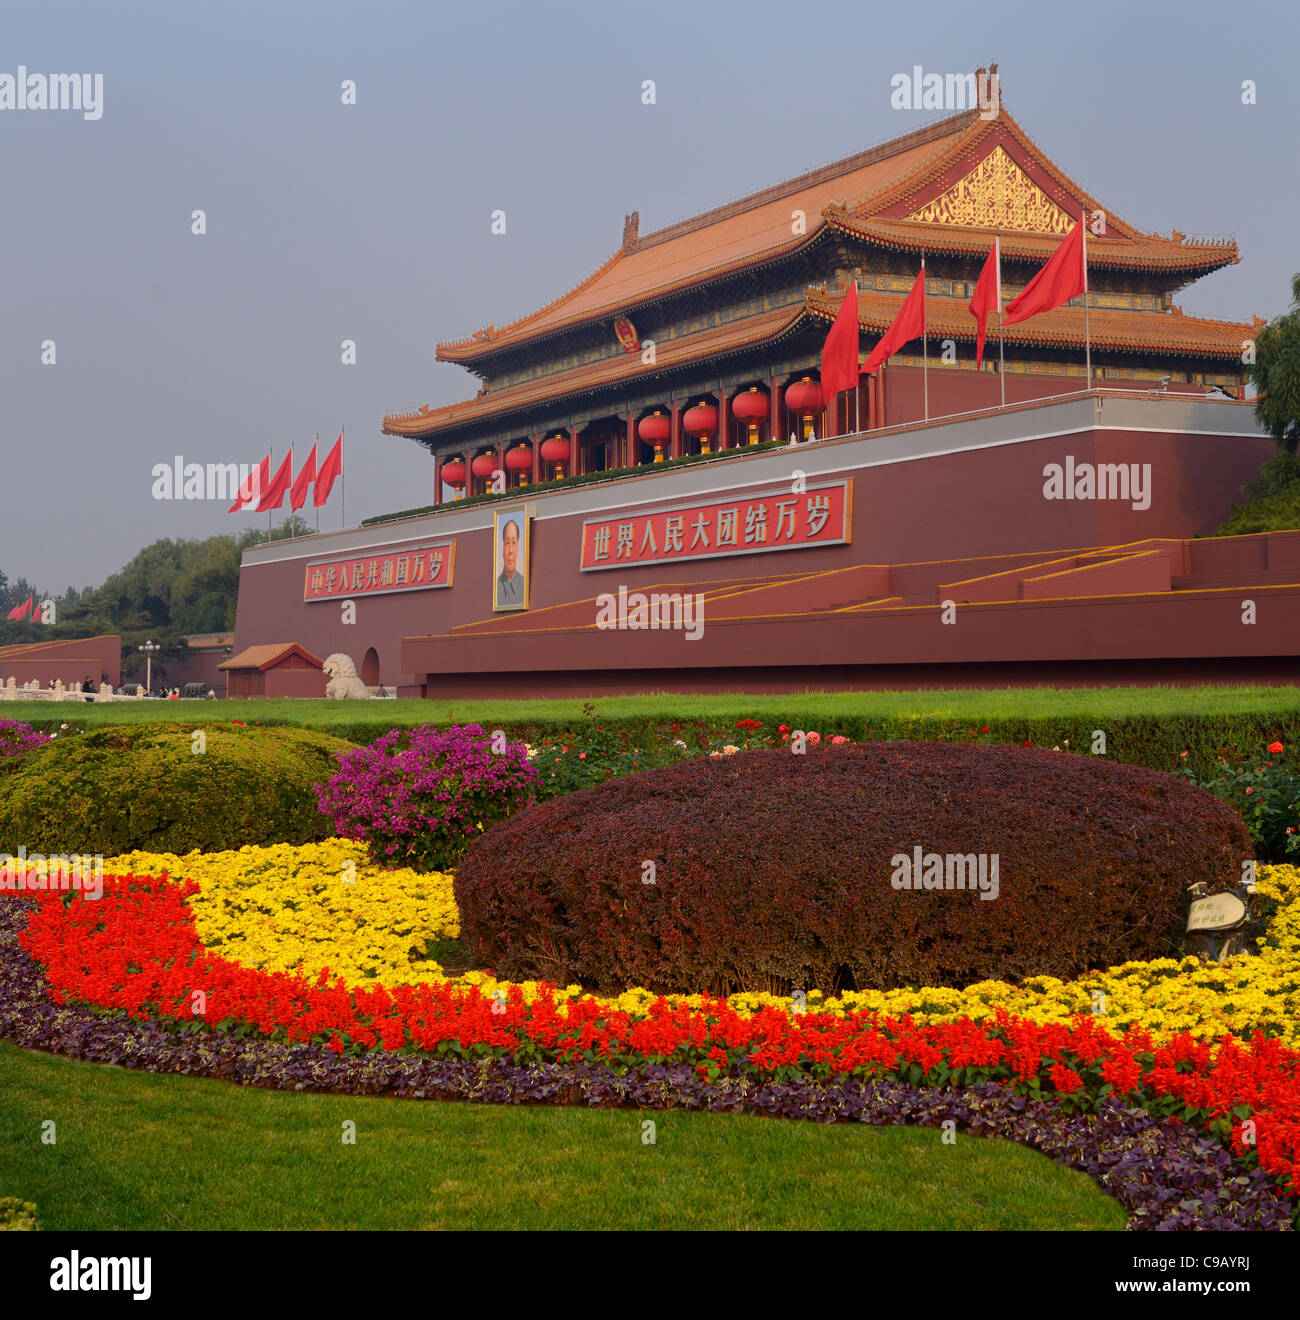 Flower garden at Tiananmen the Gate of Heavenly Peace entrance to Forbidden City Beijing Peoples Republic of China - Stock Image